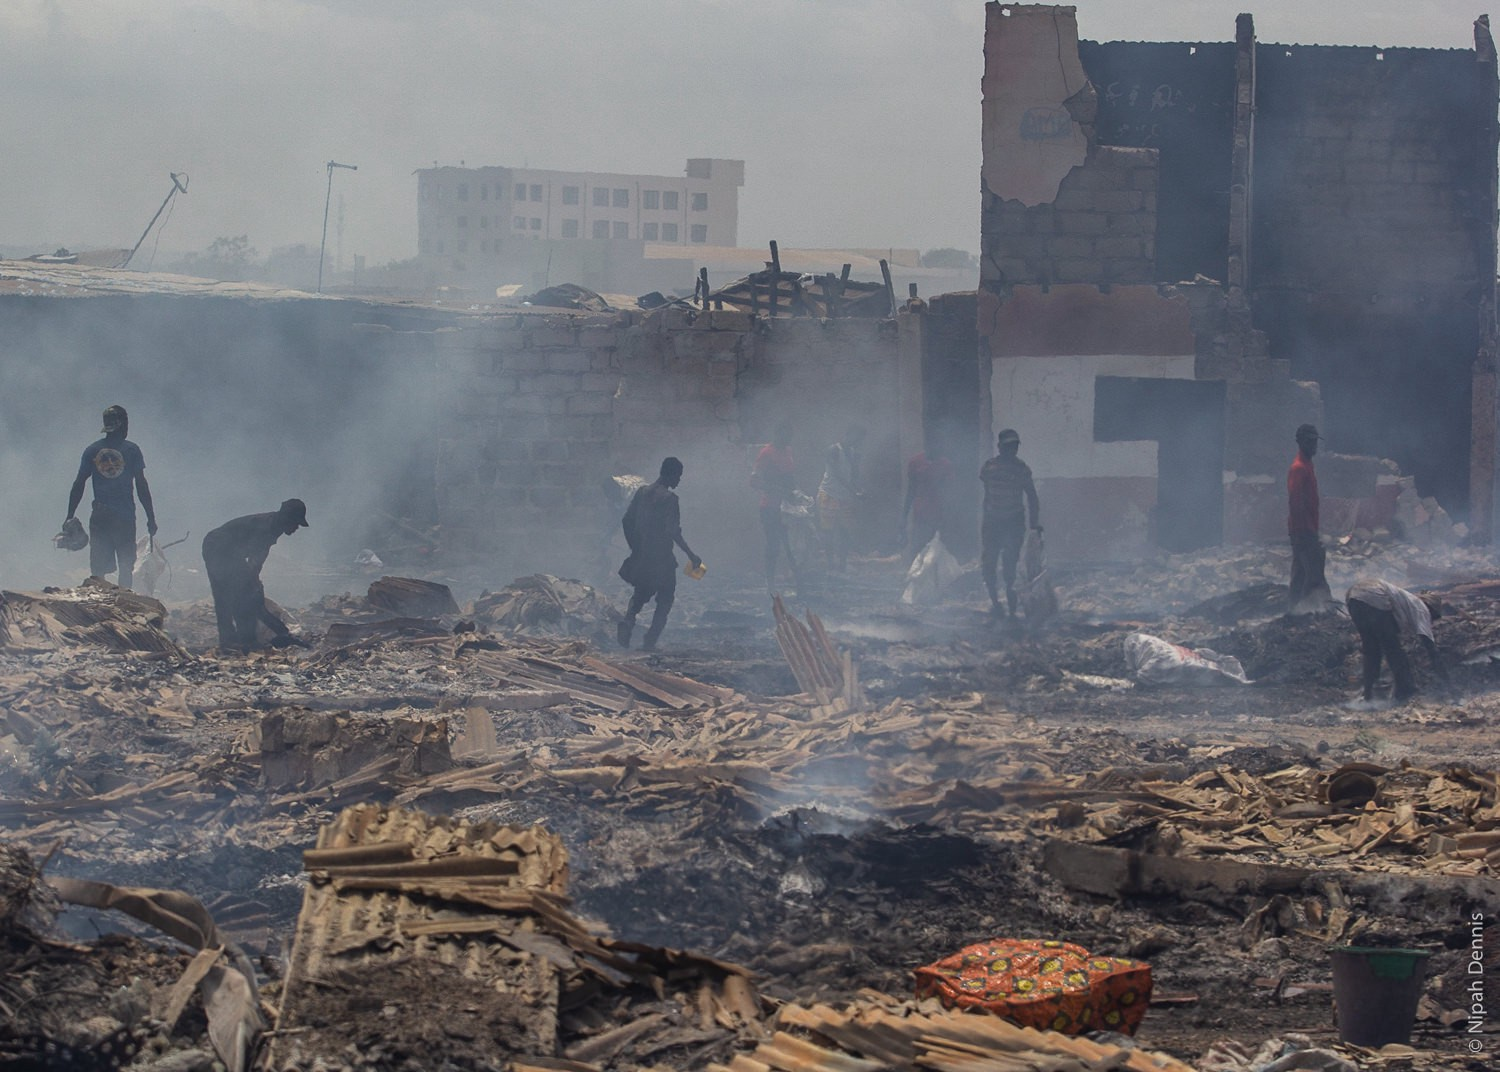 Residents try to find valuables in the debris after homes burn to the ground in Agbogbloshie, Accra, Ghana. April 7, 2020. Ph